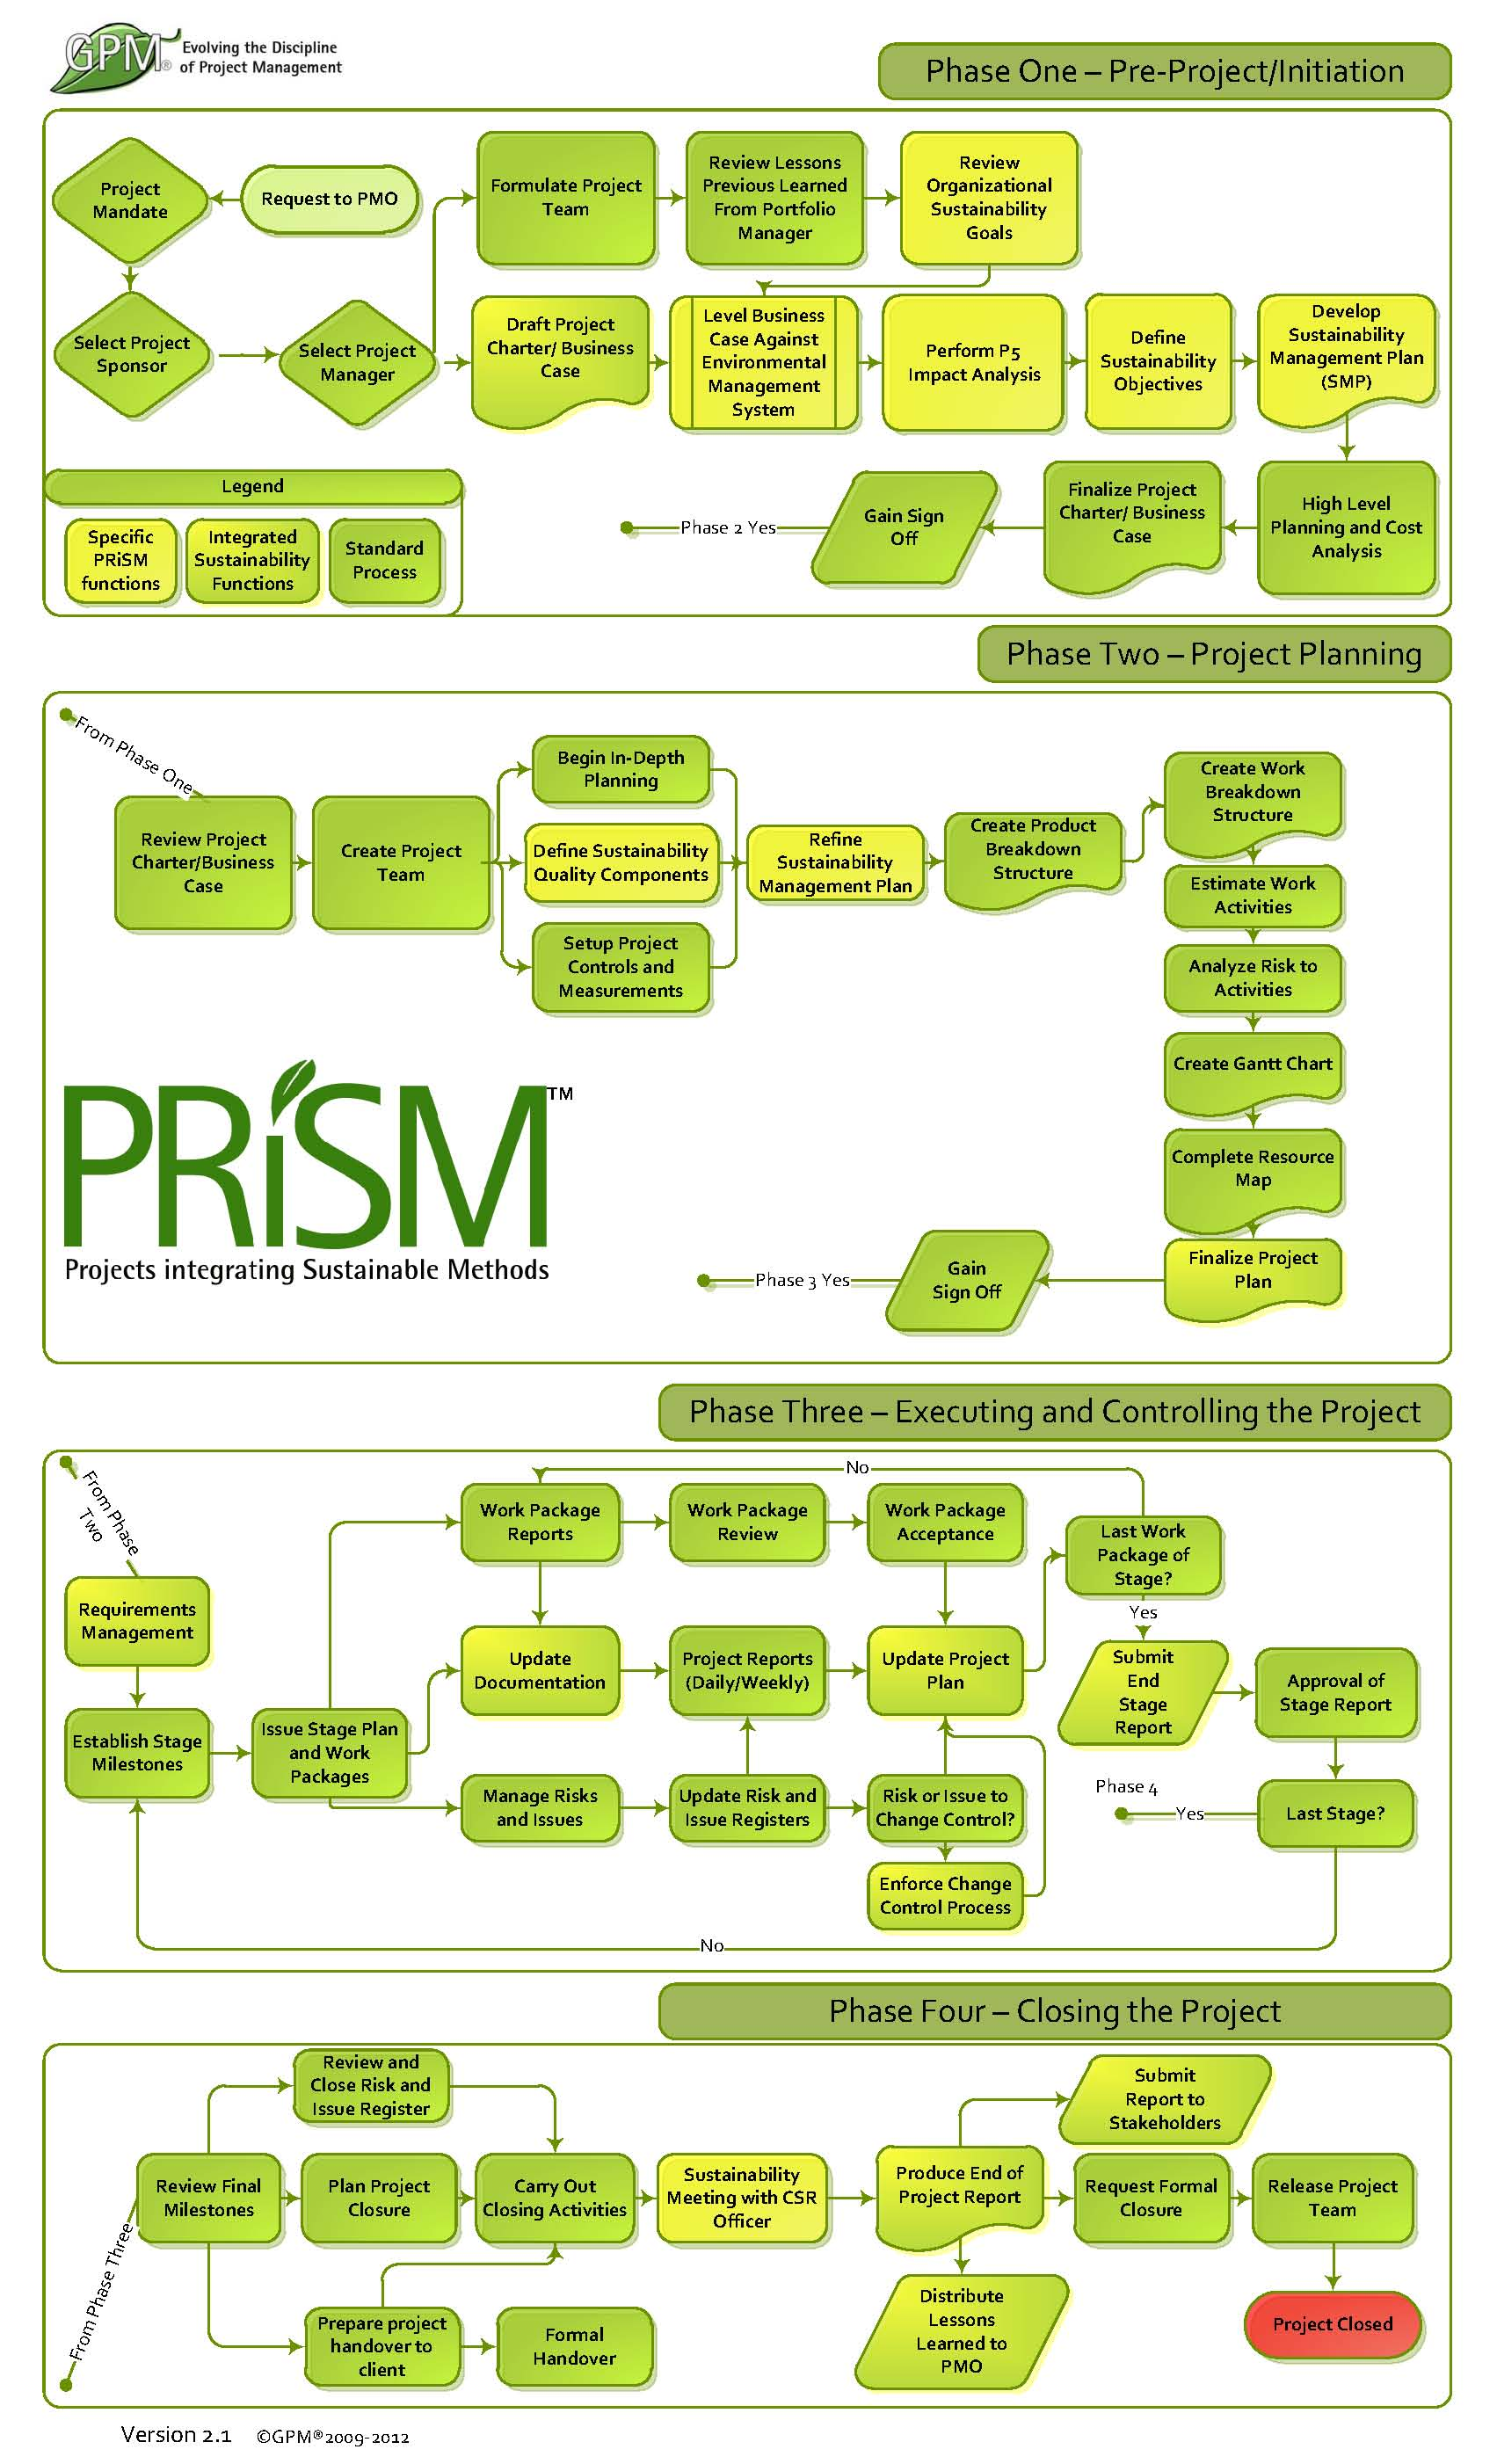 Construction Flow Chart Template: The PRiSM Flowchart.jpg - Wikimedia Commons,Chart